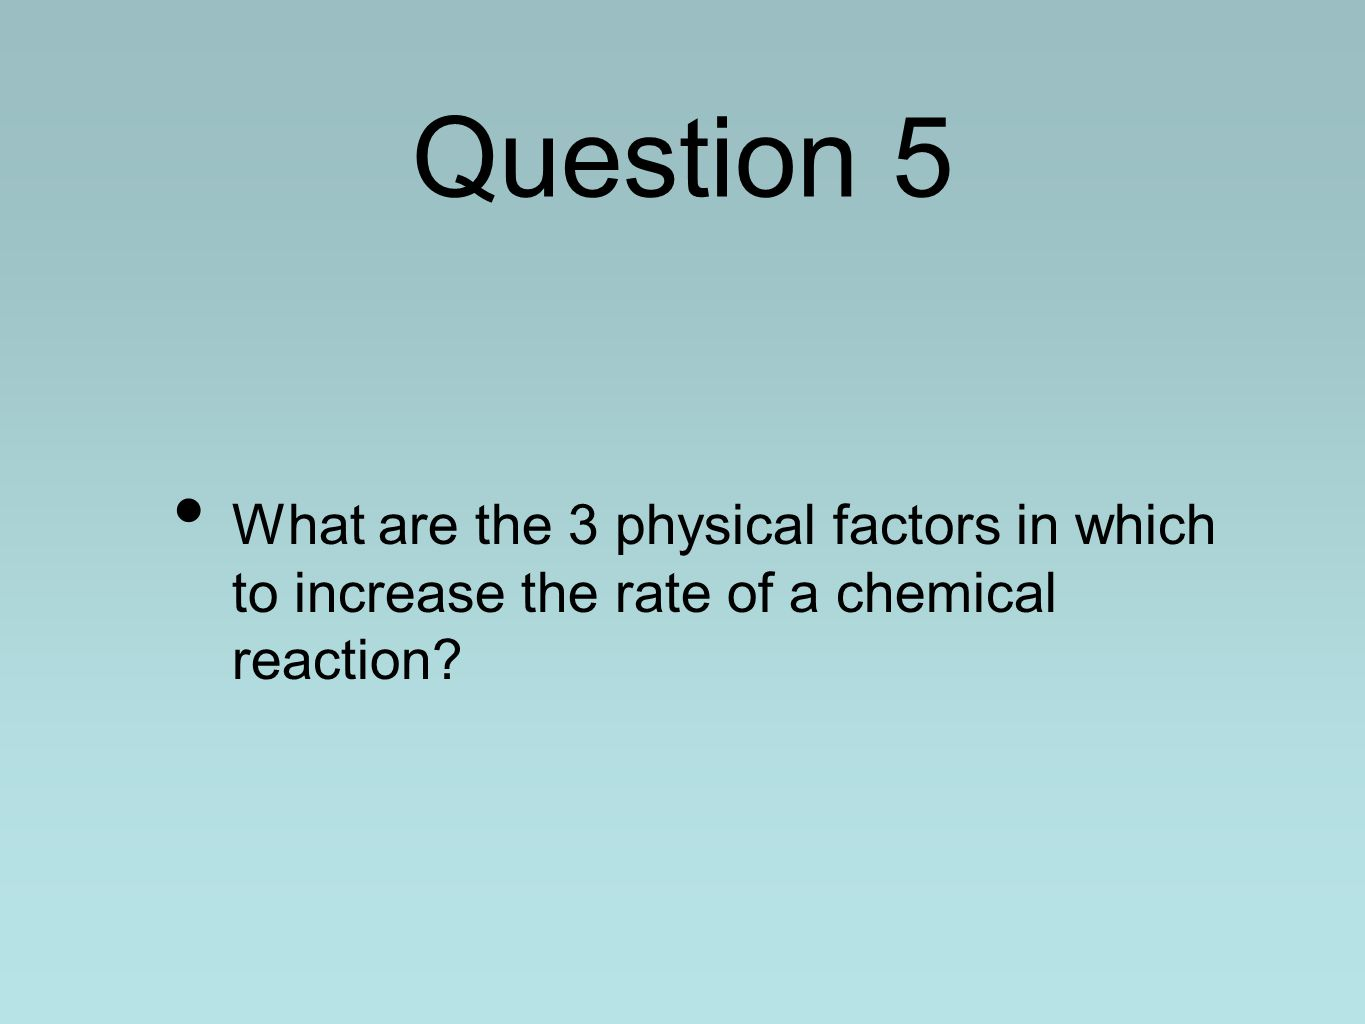 Question 5 What are the 3 physical factors in which to increase the rate of a chemical reaction